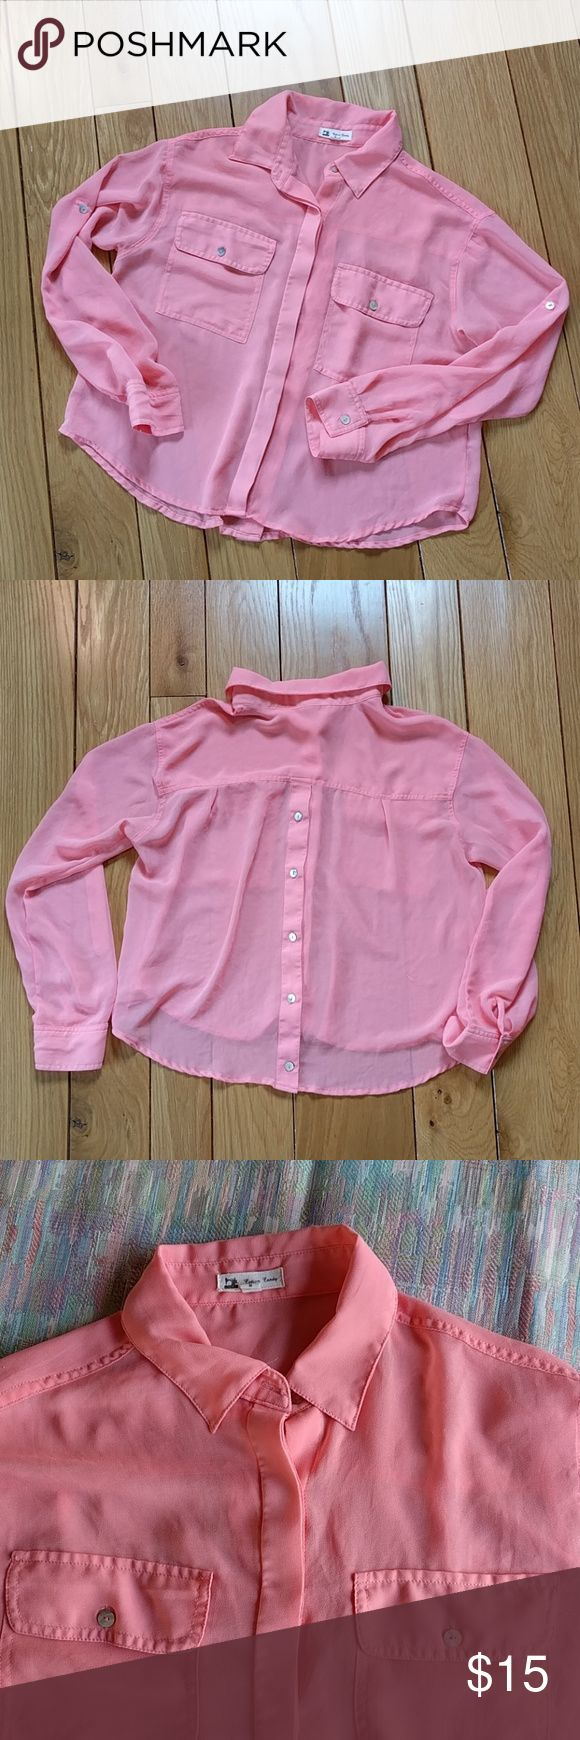 """Pink Cotton Candy see through blouse Semi see through blouse with hidden buttons in the front and great buttons down the back.  A great pink color that will be great in spring and summer.  Loose fitting and lightweight material.  Color closest to the pictures with the pink fabric background.  Measurements 20"""" flat across under the armpits, 22"""" length. cotton candy Tops Button Down Shirts"""